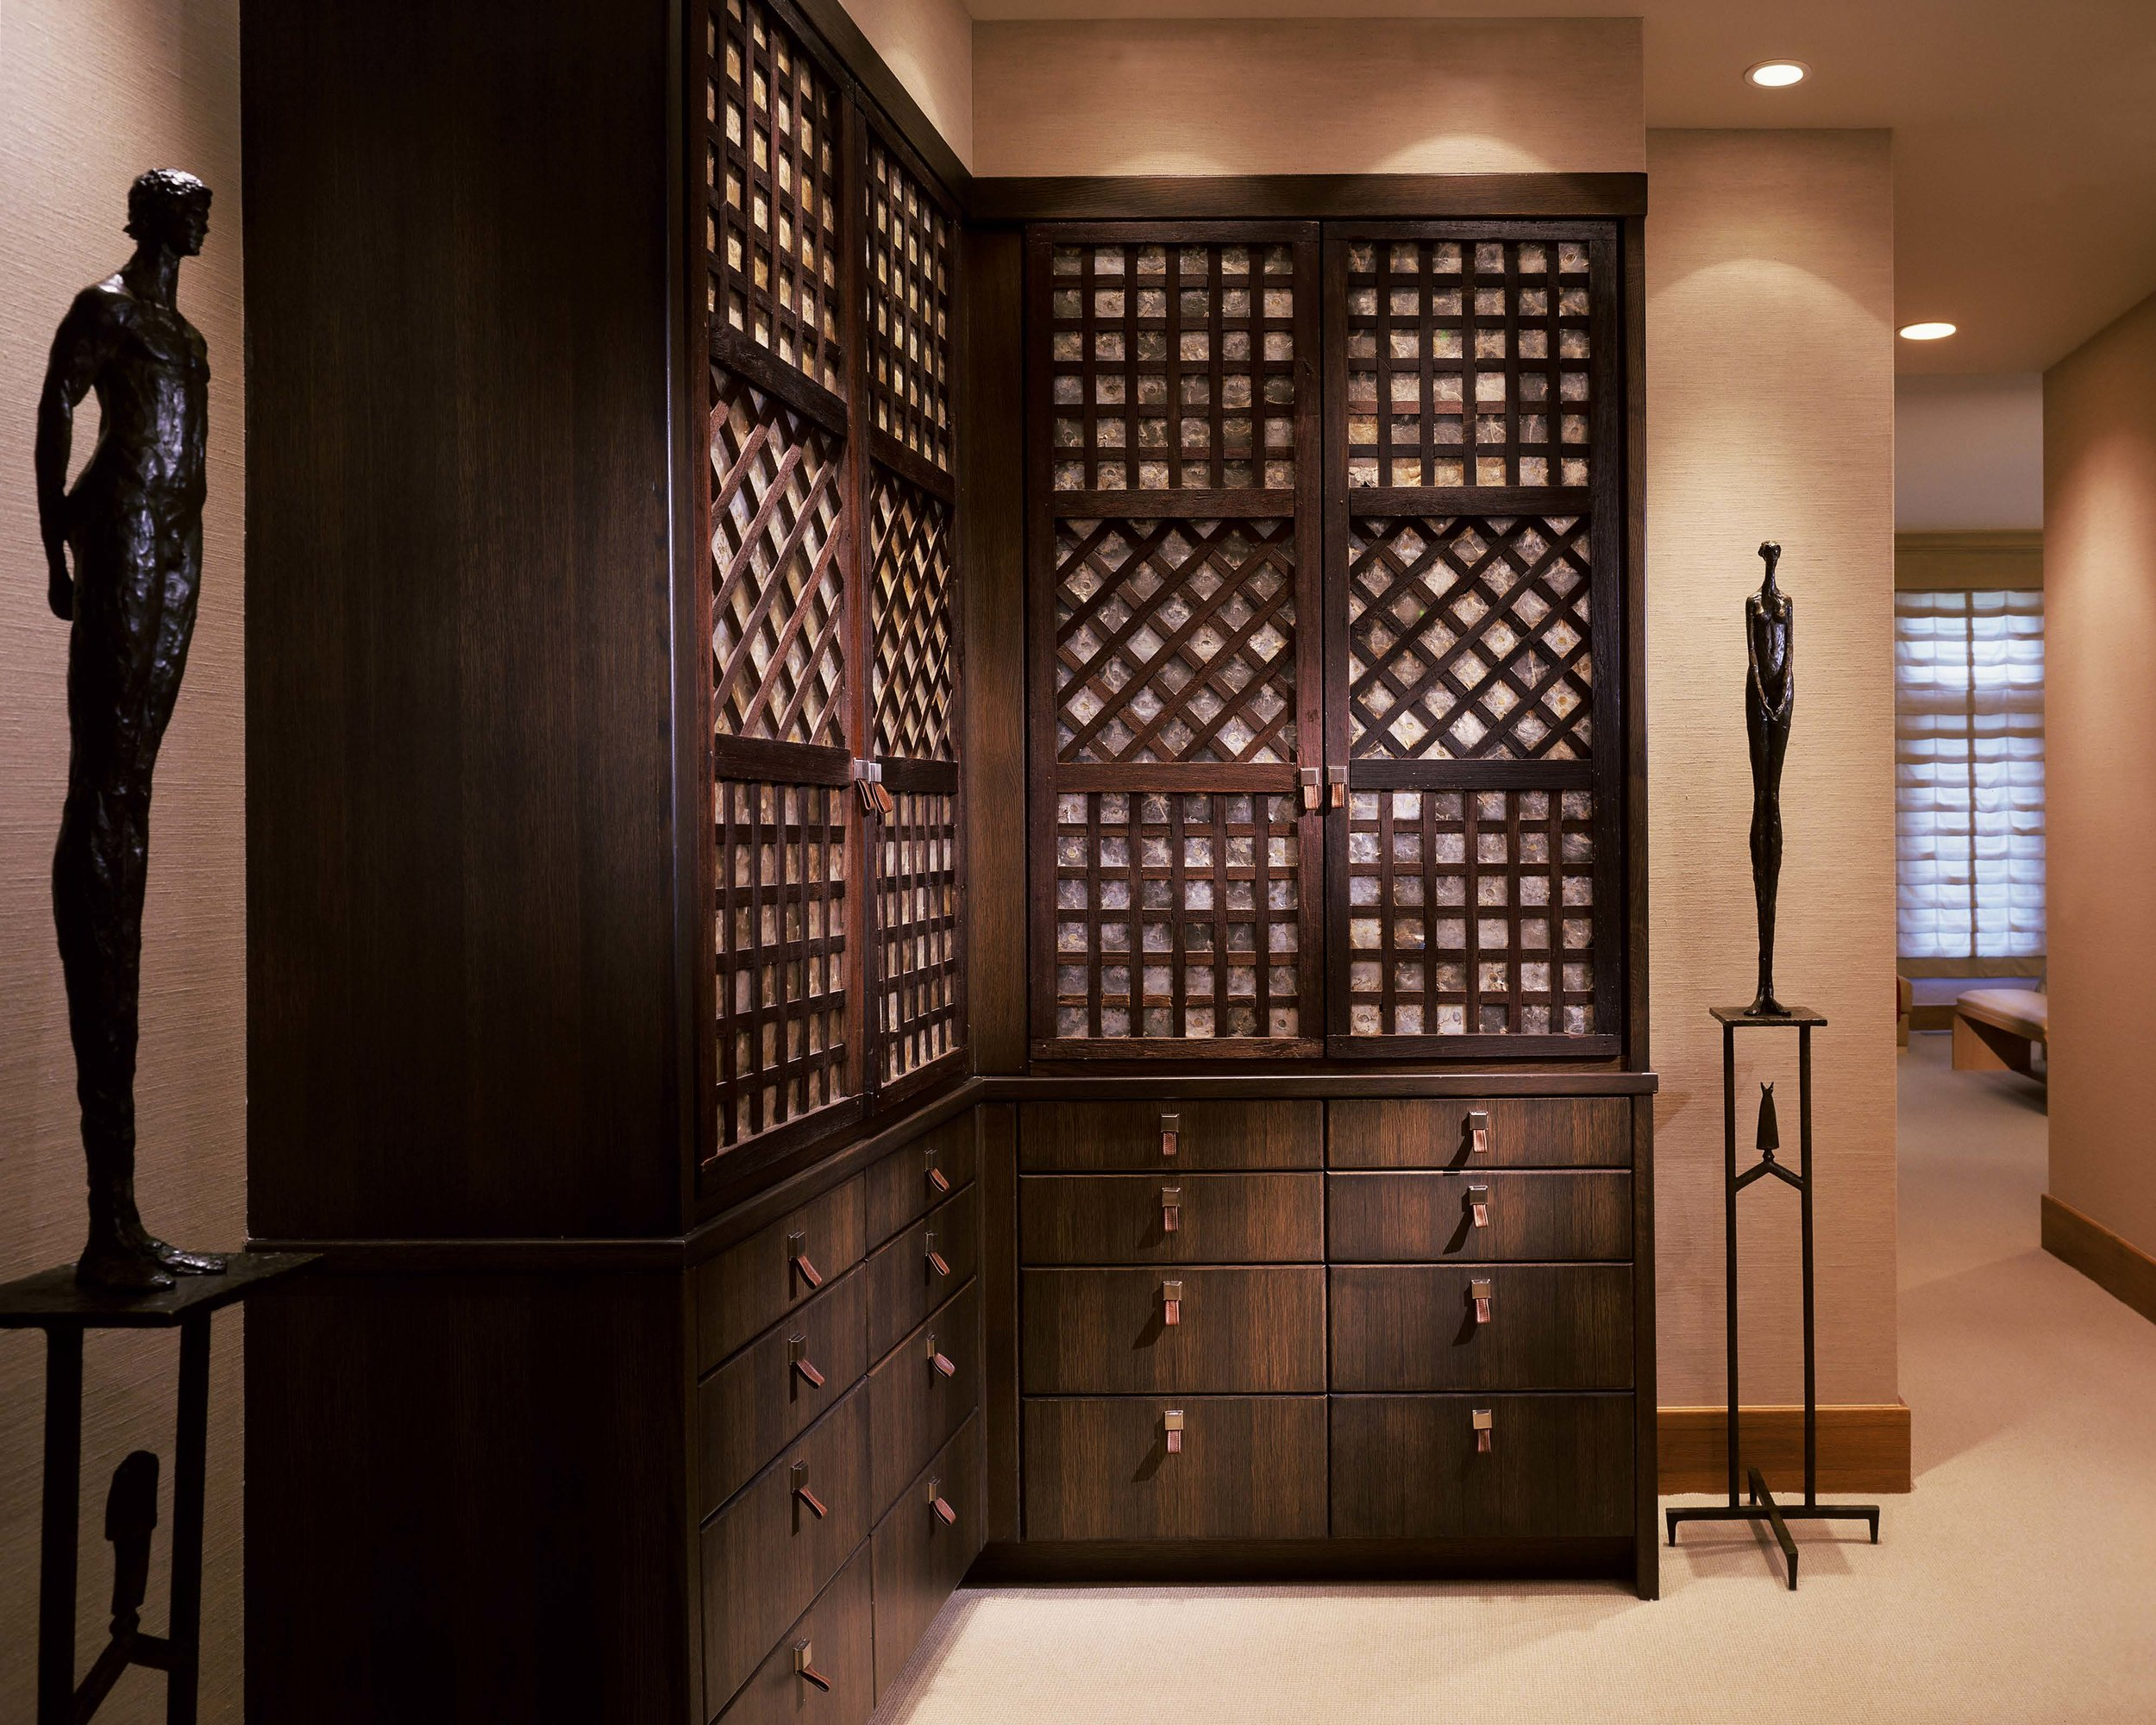 Cabinetry 25.jpg